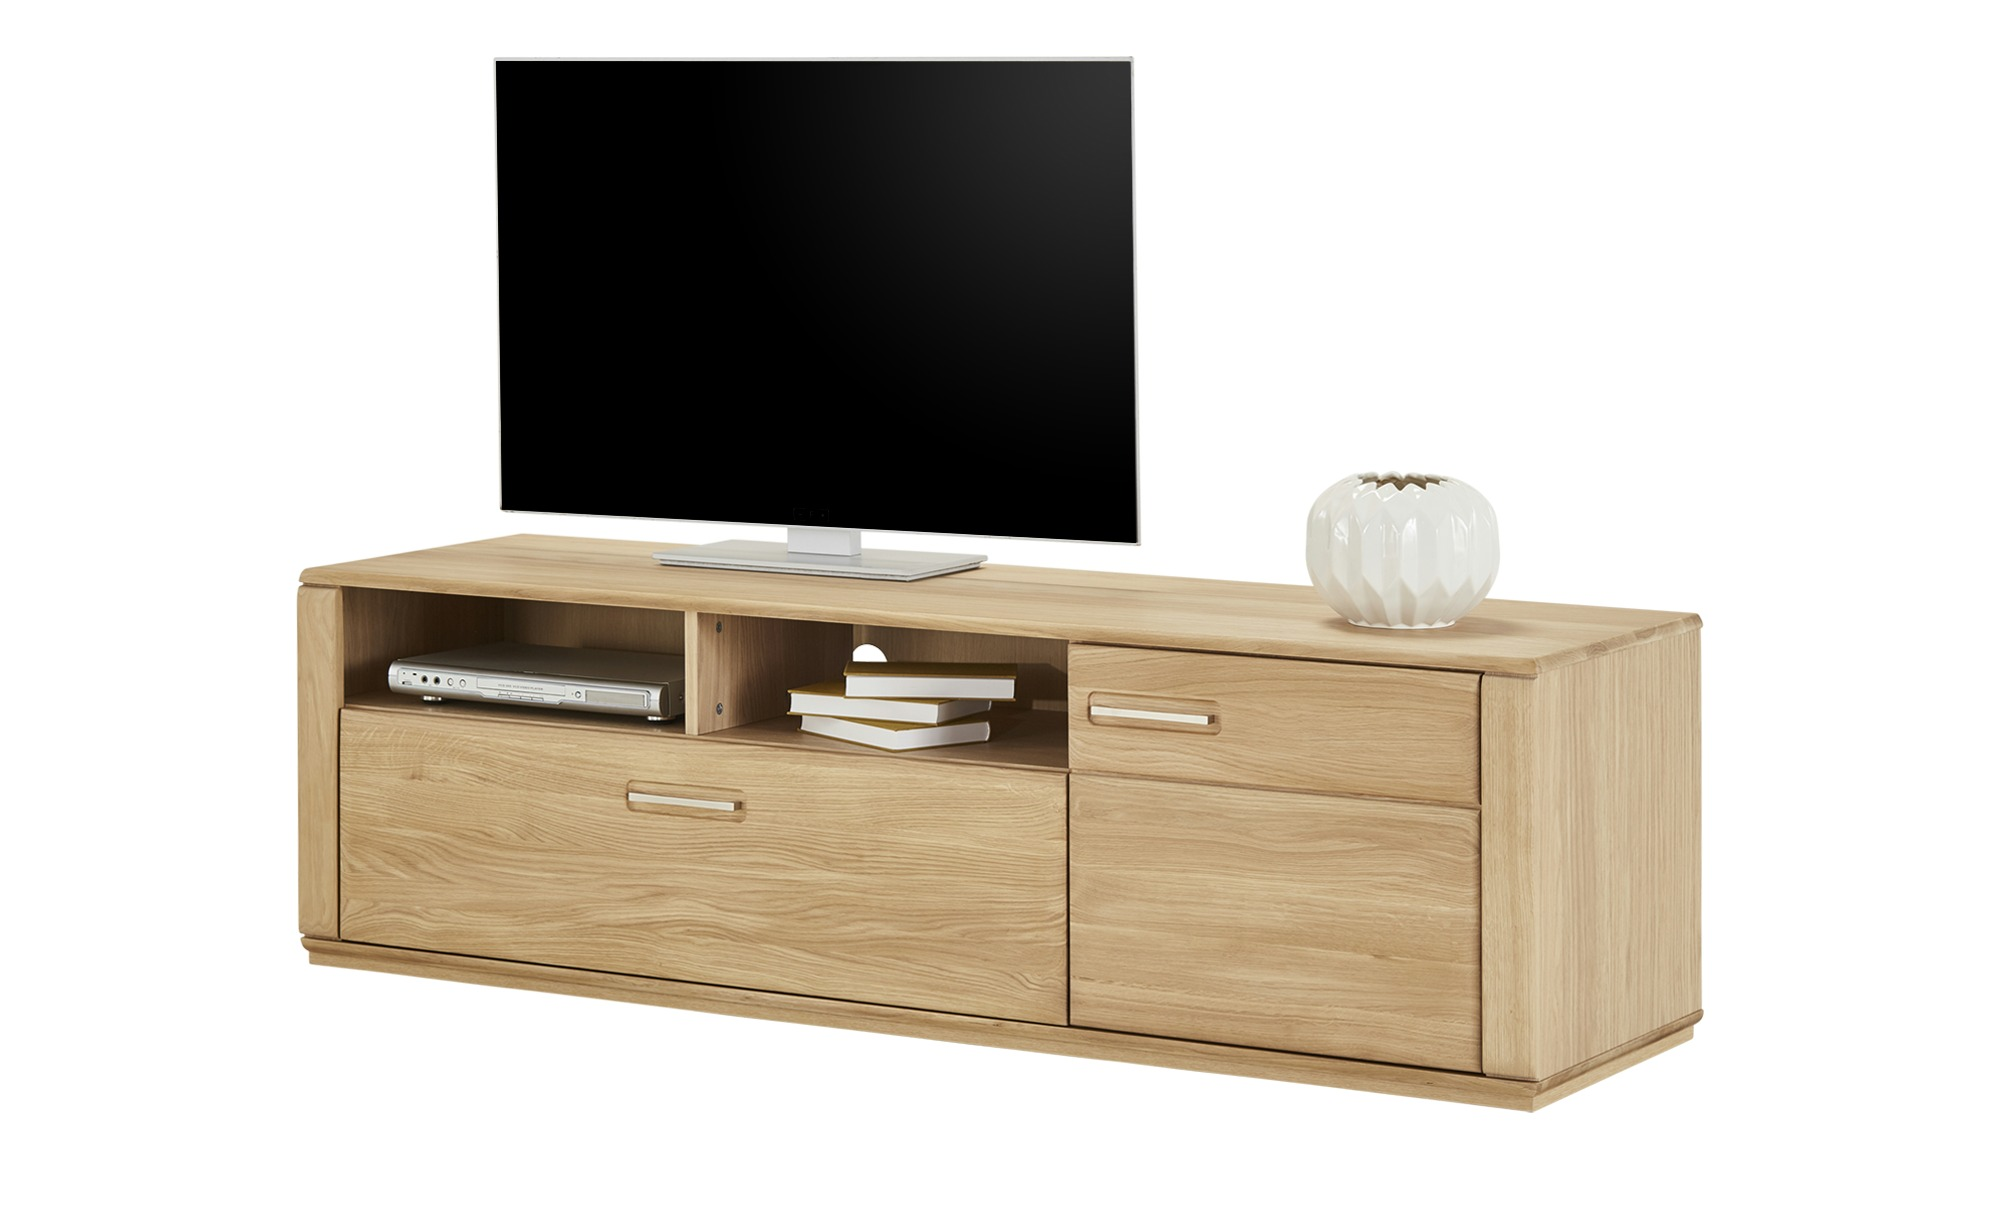 Woodford TV-Element  Dio ¦ holzfarben ¦ Maße (cm): B: 179 H: 50 T: 51 Kommoden & Sideboards > Lowboards - Höffner